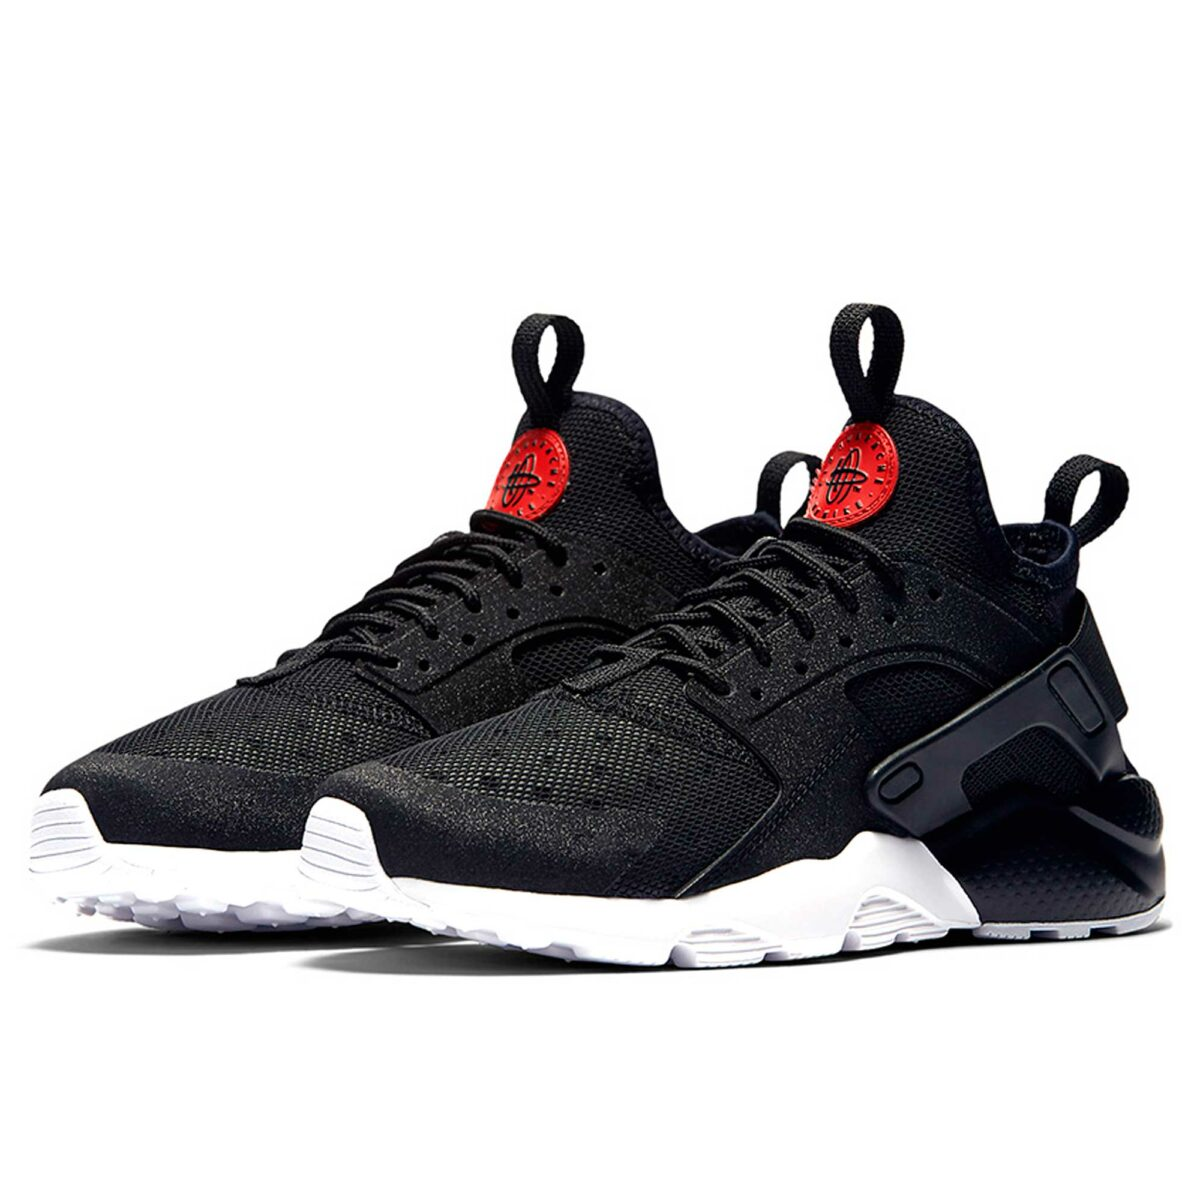 nike air huarache ultra gs black white 882144_001 купить